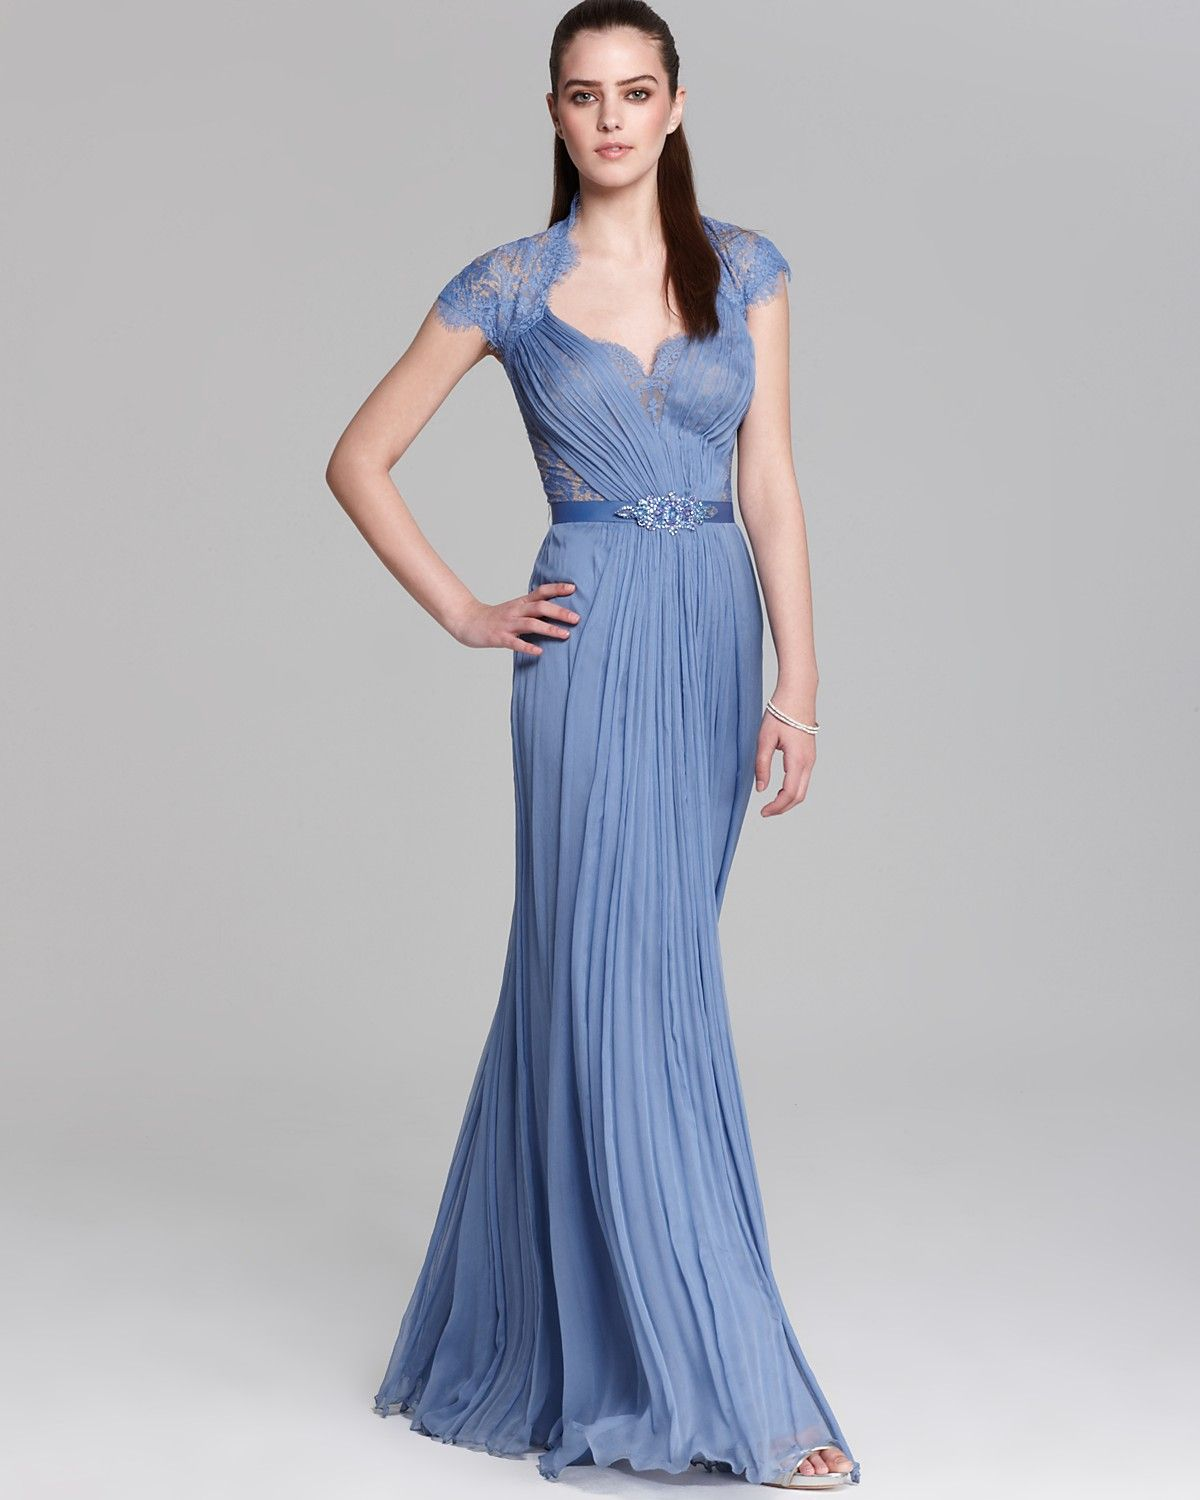 Blue grey periwinkle mother of the bride tadashi shoji for Periwinkle dress for wedding